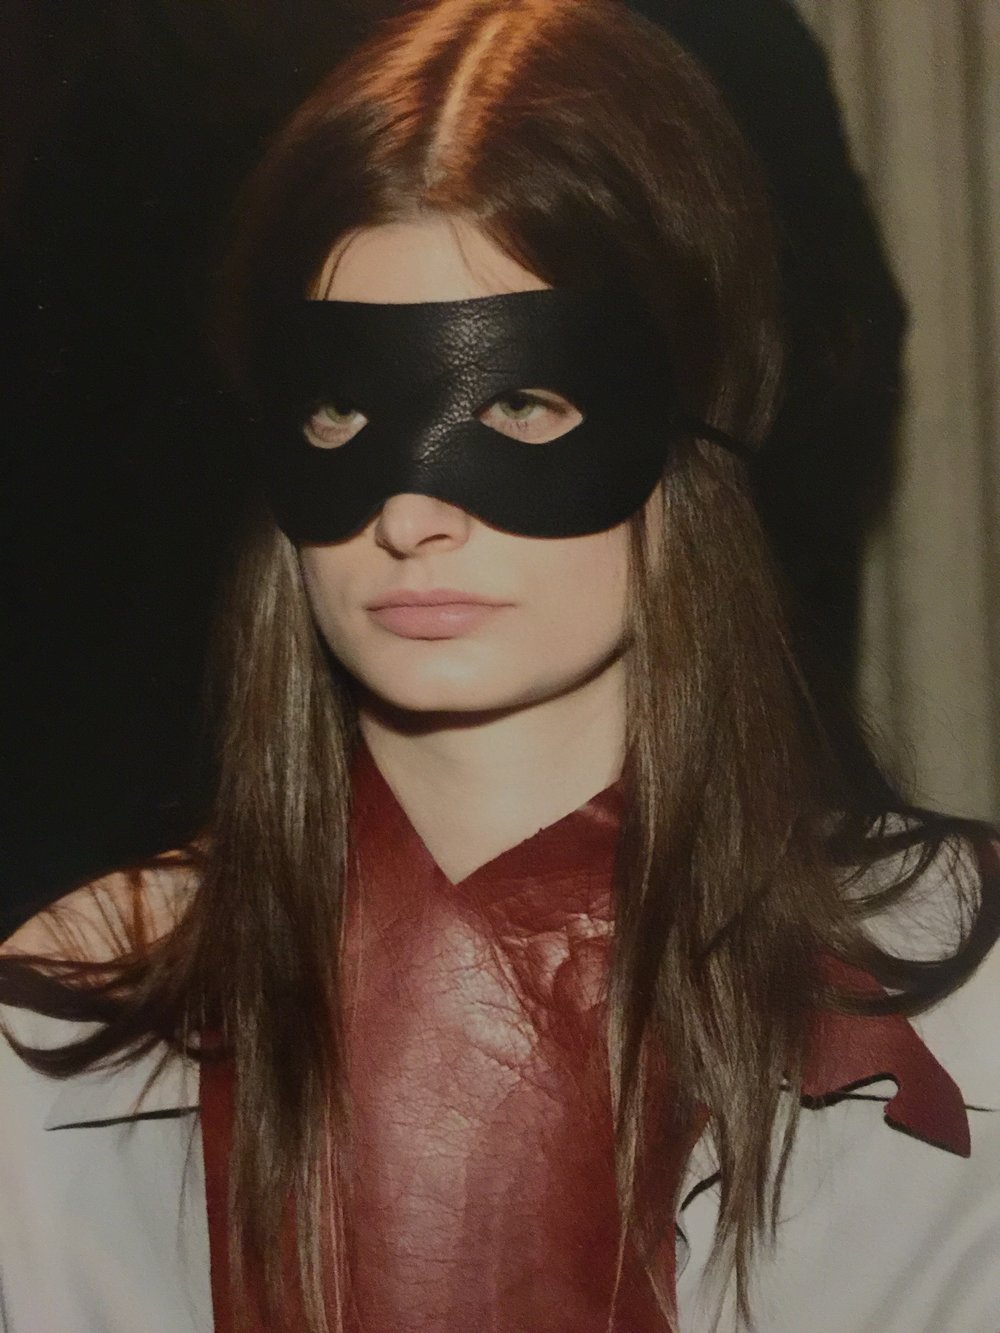 J.Elster The Raw Collection The Mask in Black on Jessica